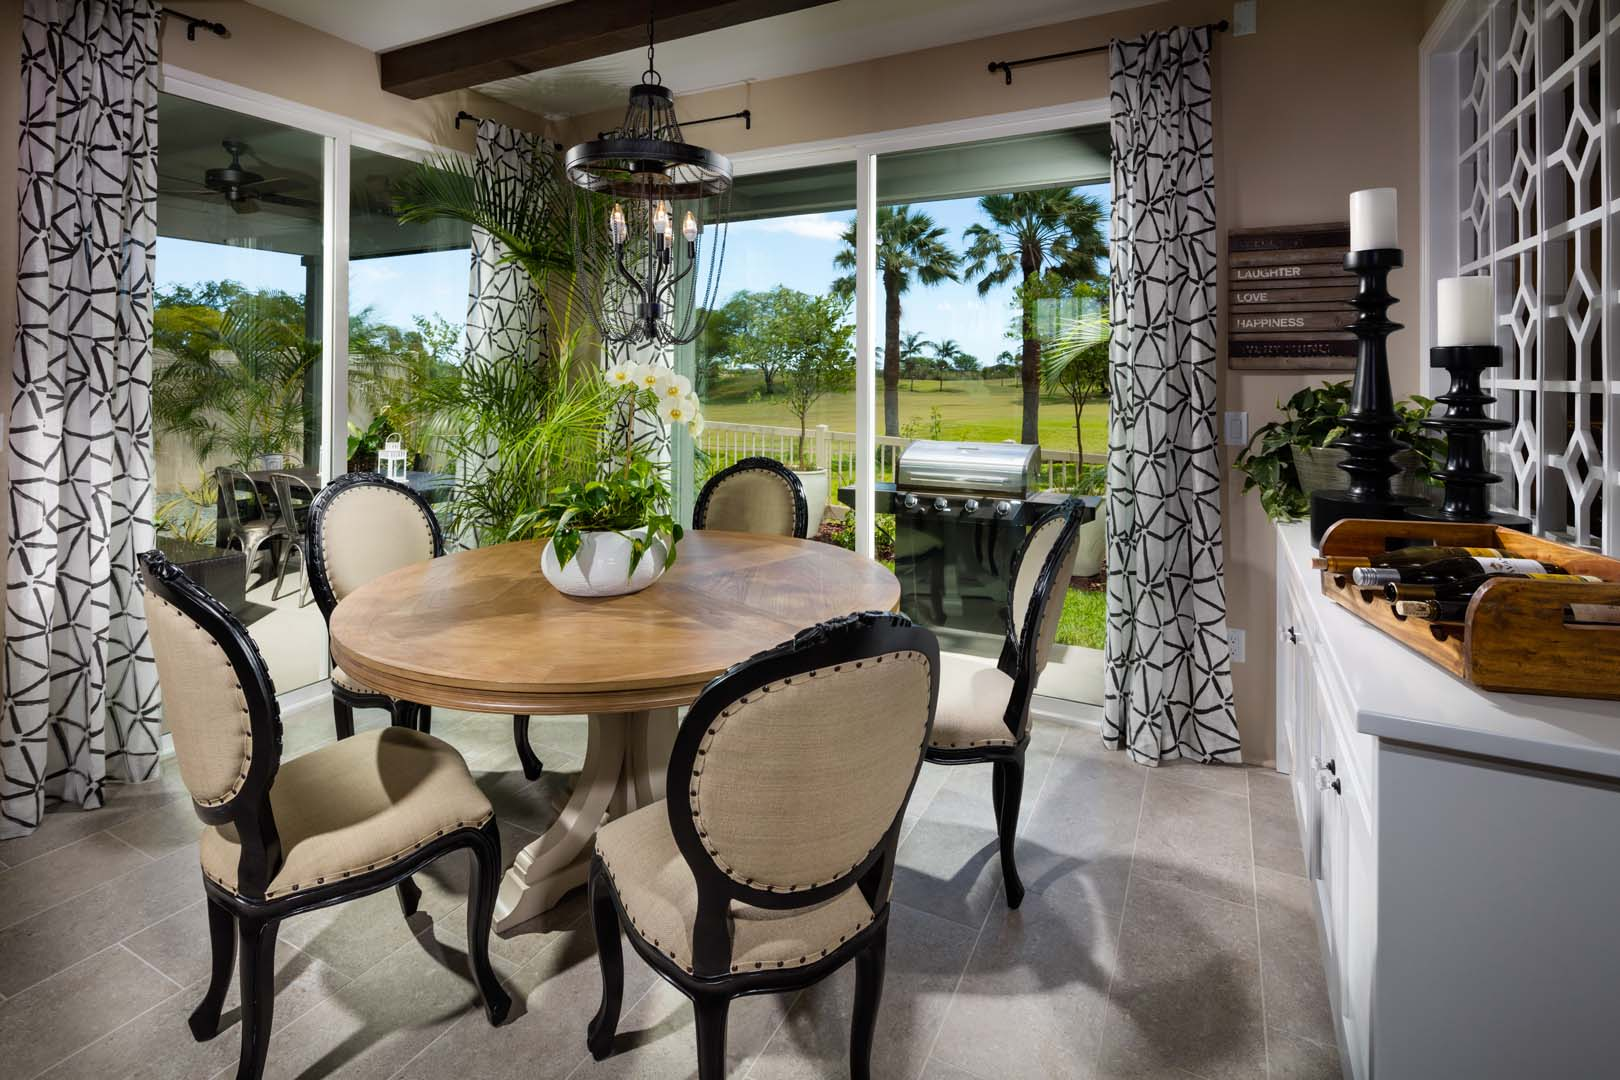 Coral Ridge Plan 2 - Dining Room